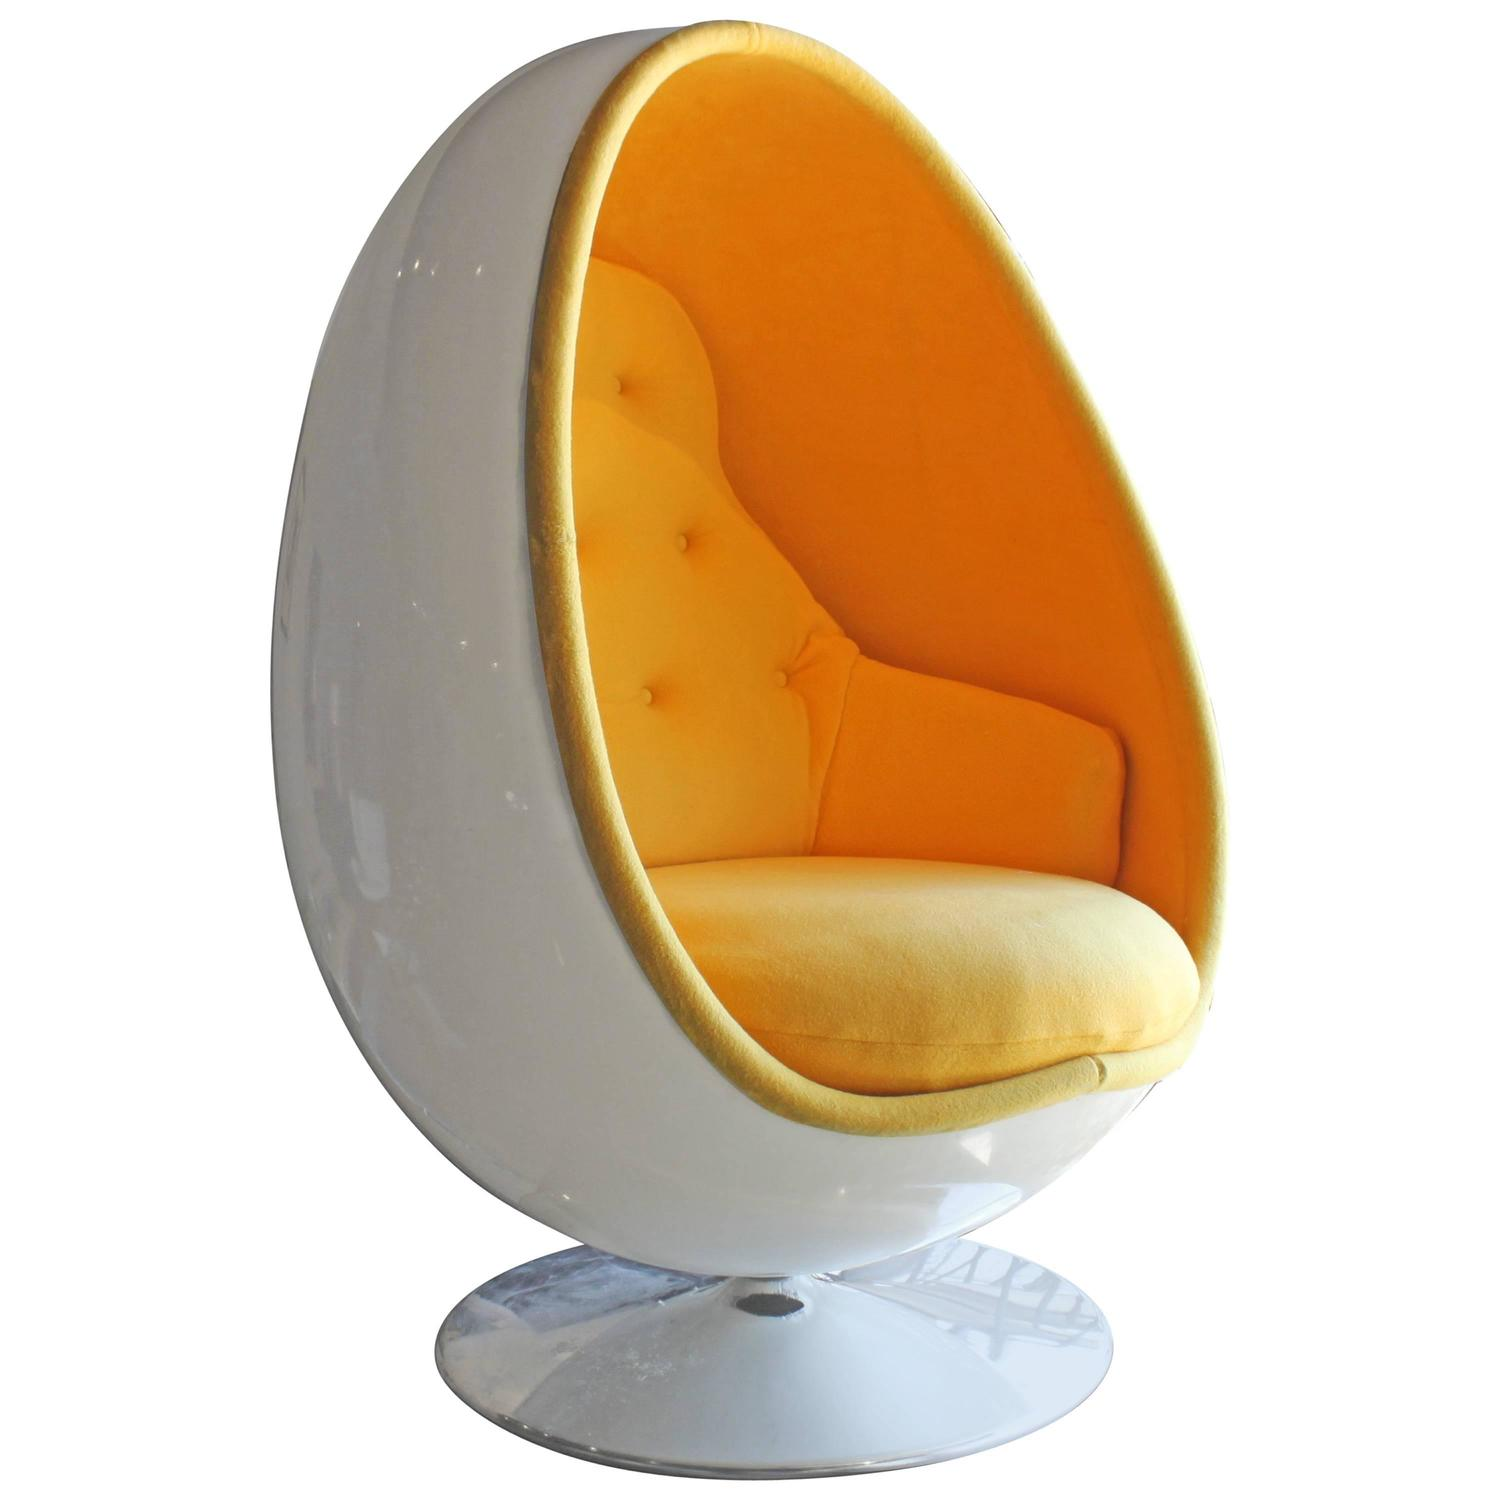 Great Ovalia Egg Chair By Thor Larsen